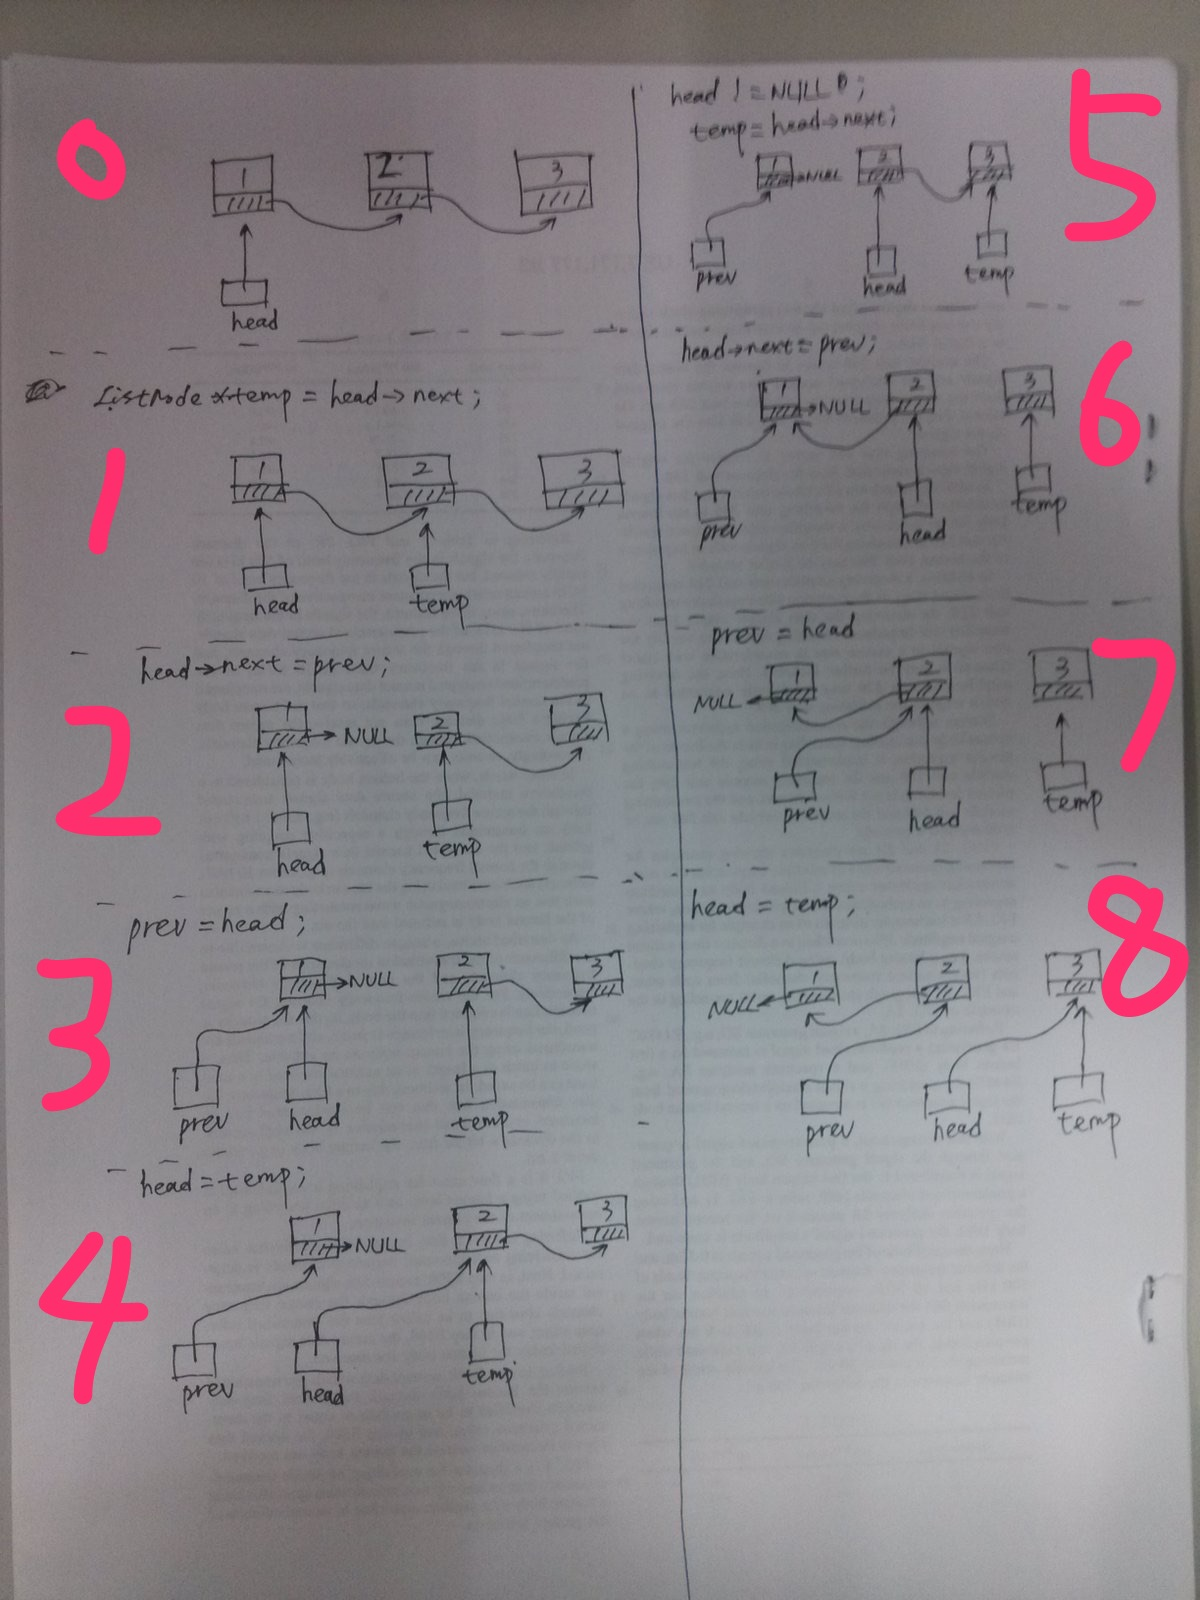 Reverse Linked List